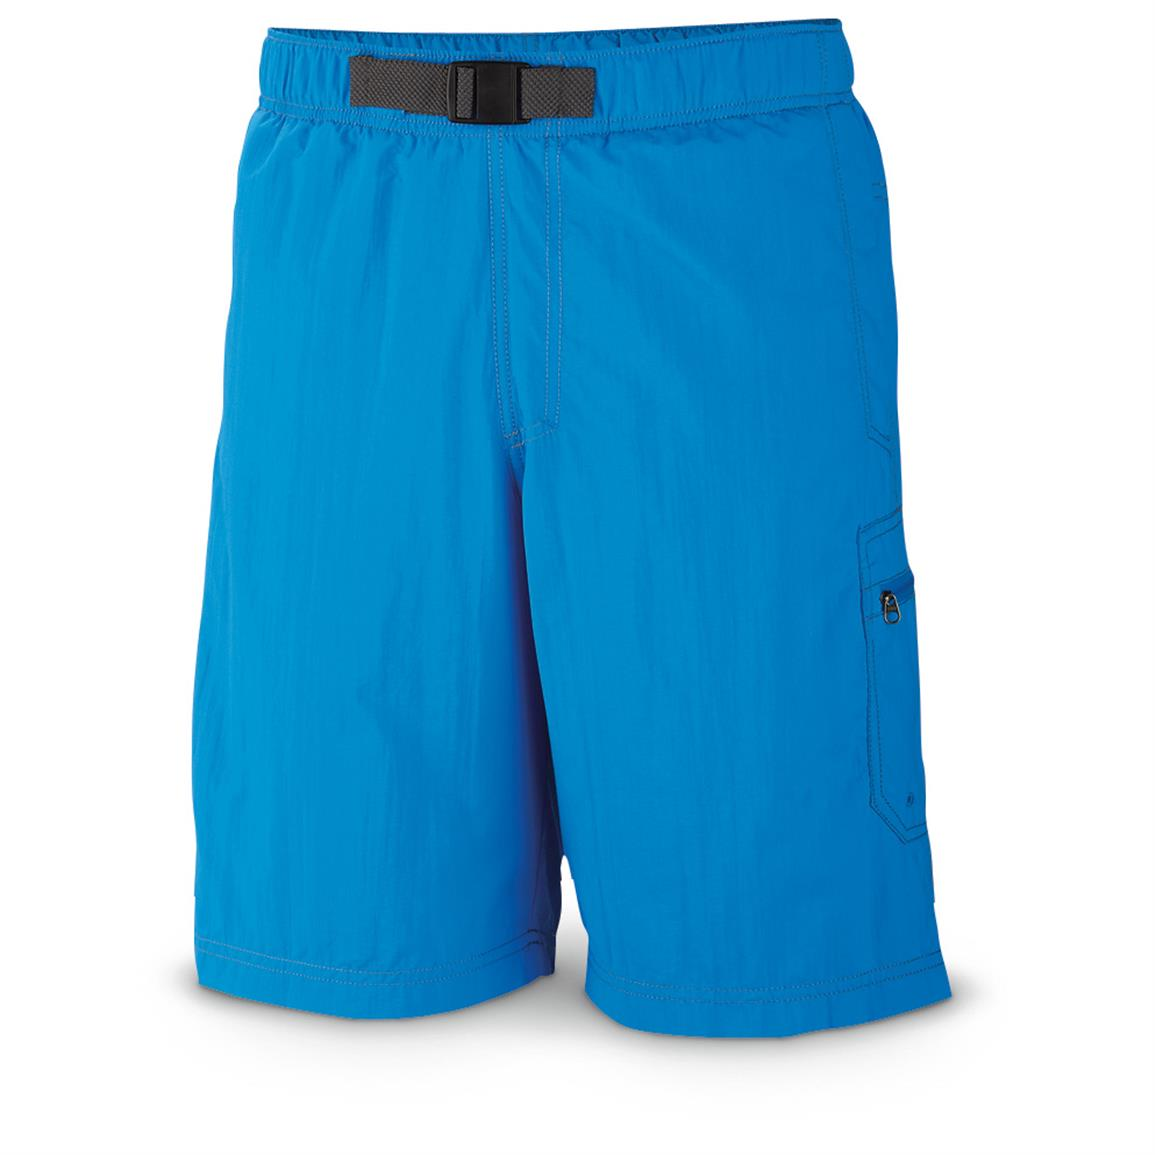 Columbia Men's Palmerston Peak Water Shorts, Hyper Blue • Front